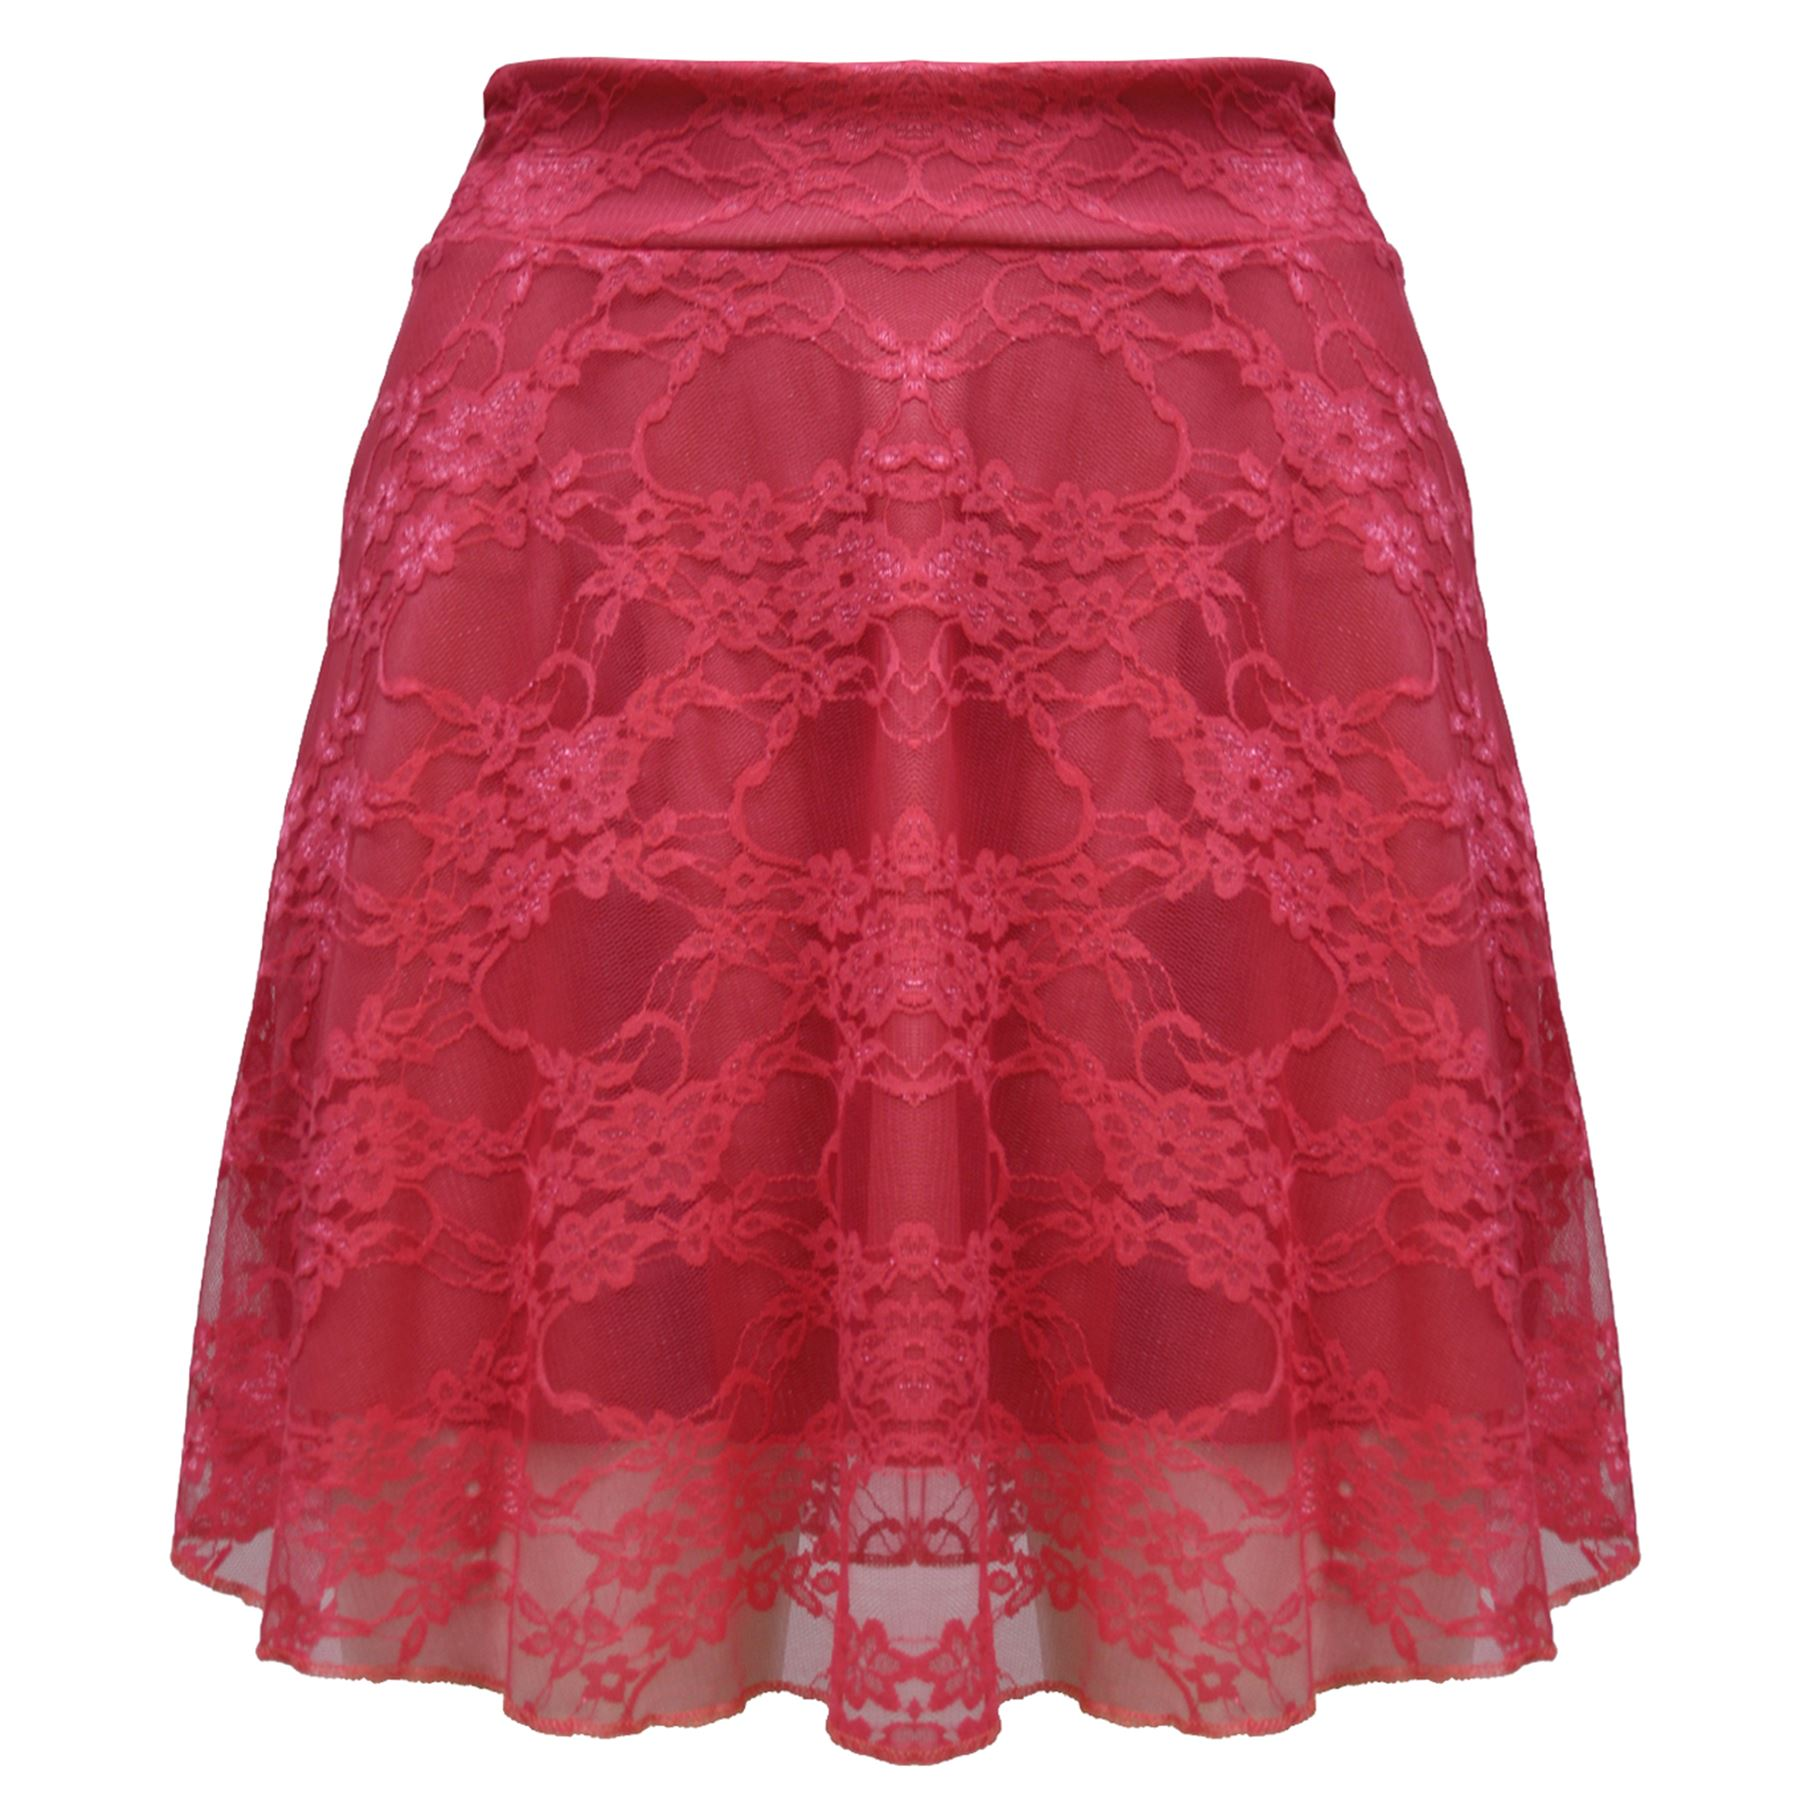 womens stretchy high waist lace mesh flared